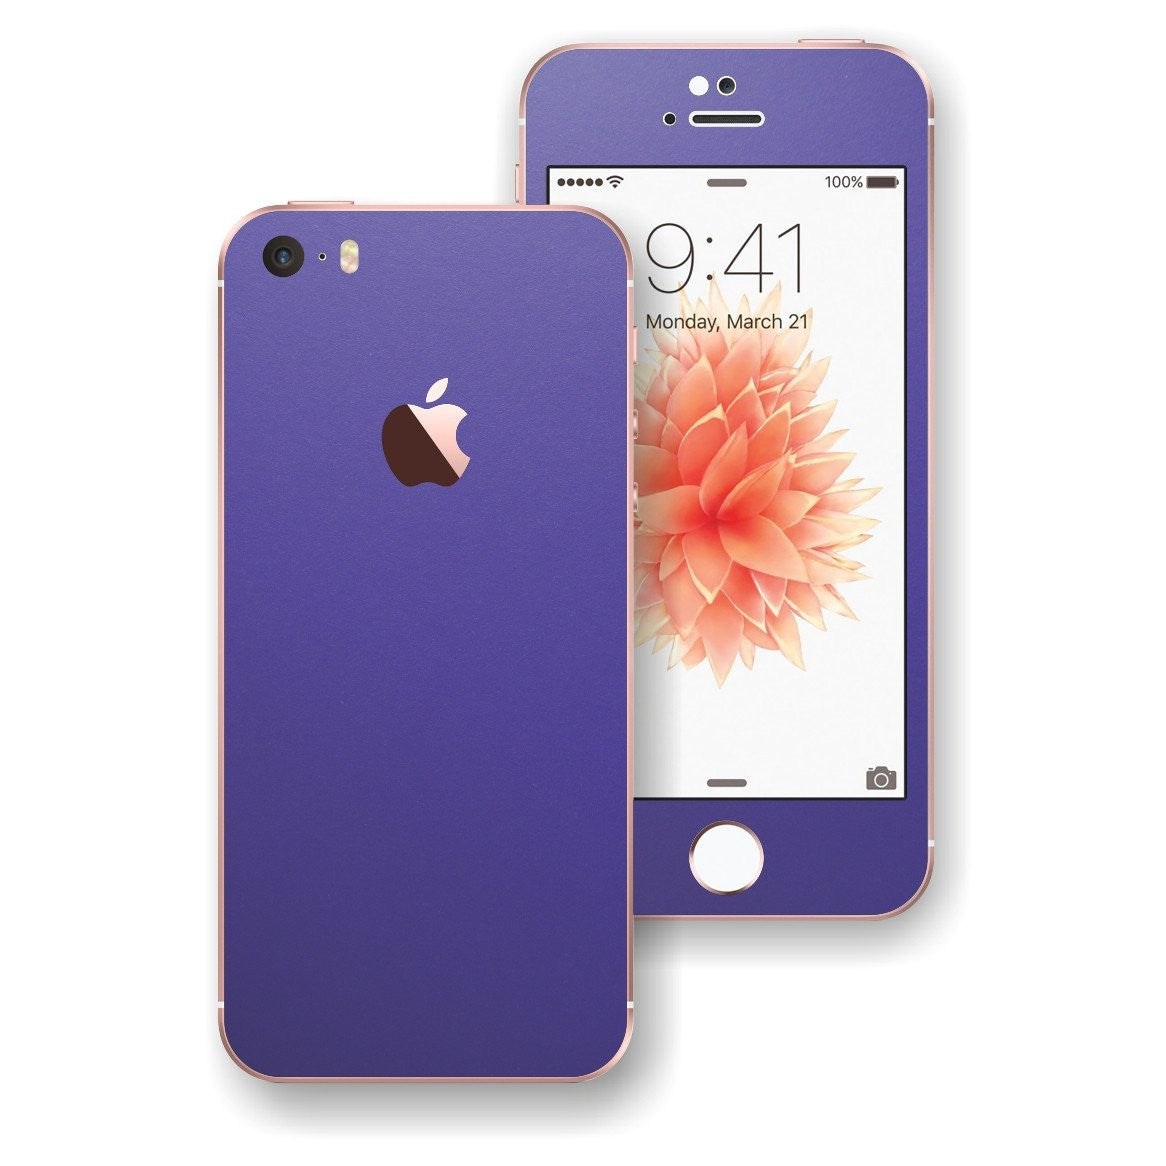 iPhone SE 3M Royal Purple Matt Matte Skin Wrap Decal Sticker Cover Protector by EasySkinz